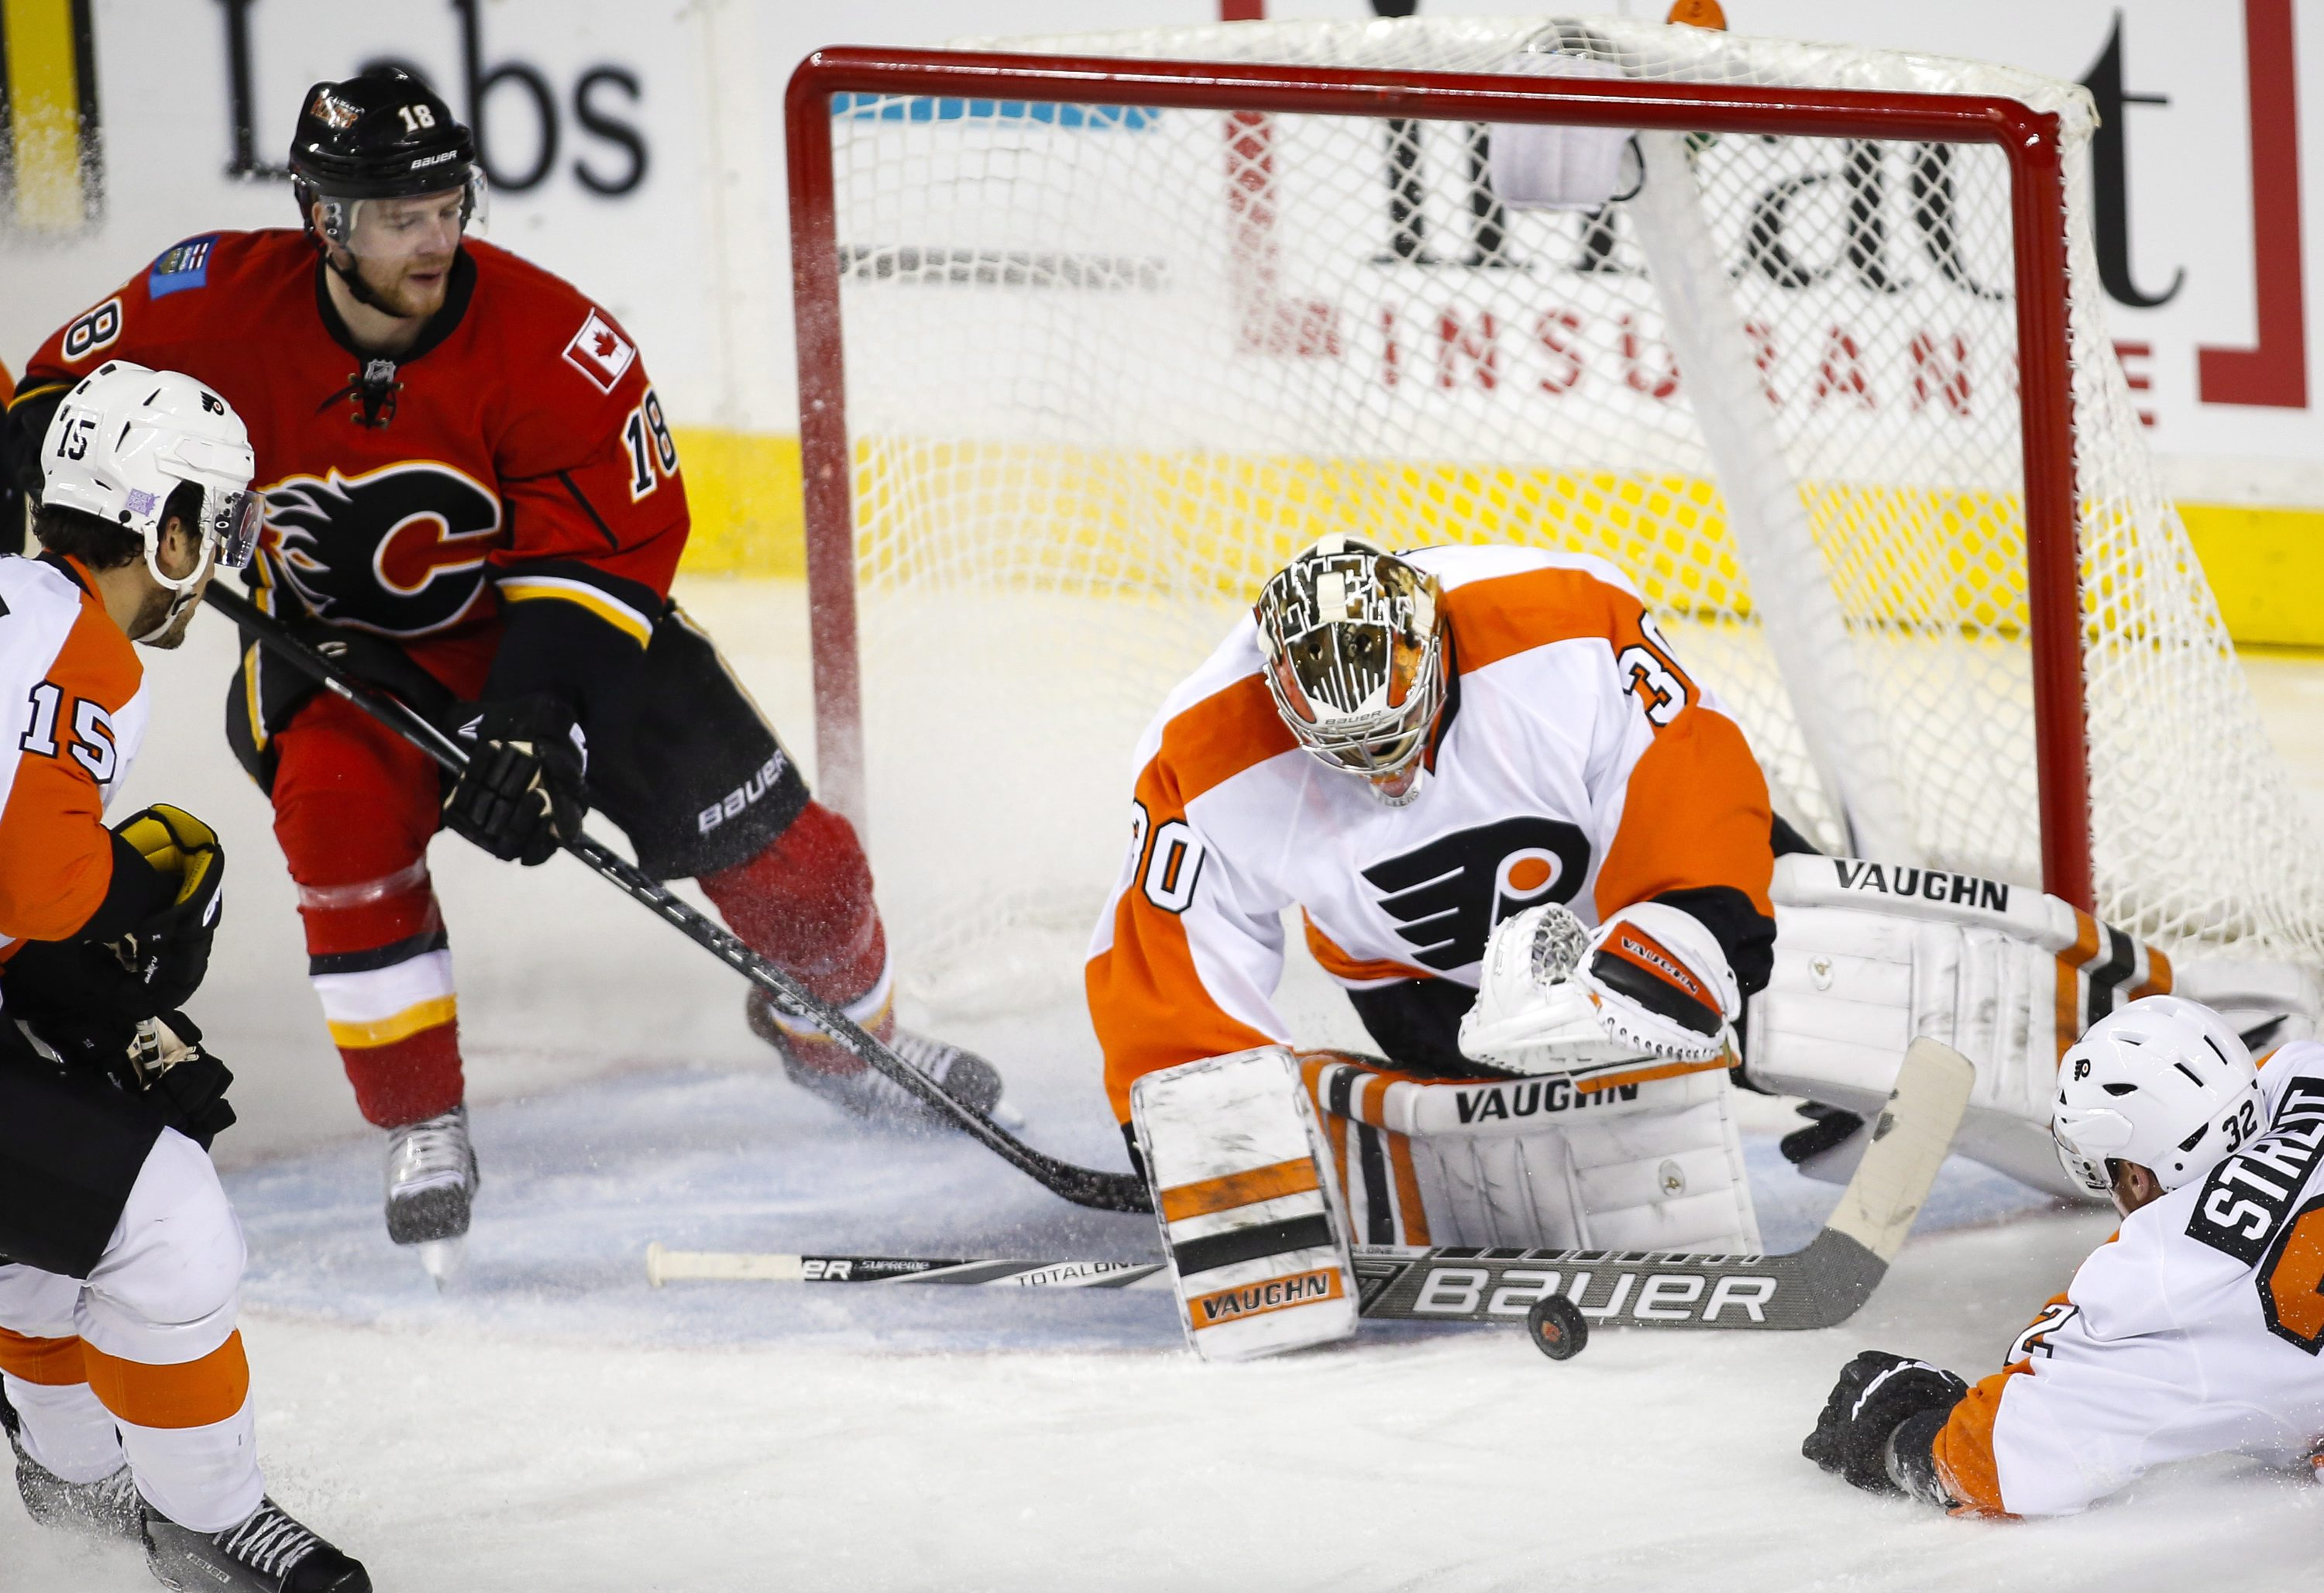 Philadelphia Flyers' goalie Michal Neuvirth (30), of the Czech Republic, grabs for the puck as Calgary Flames' Matt Stajan (18) looks on during second-period NHL hockey game action in Calgary, Alberta, Thursday, Nov. 5, 2015. (Jeff McIntosh/The Canadian P